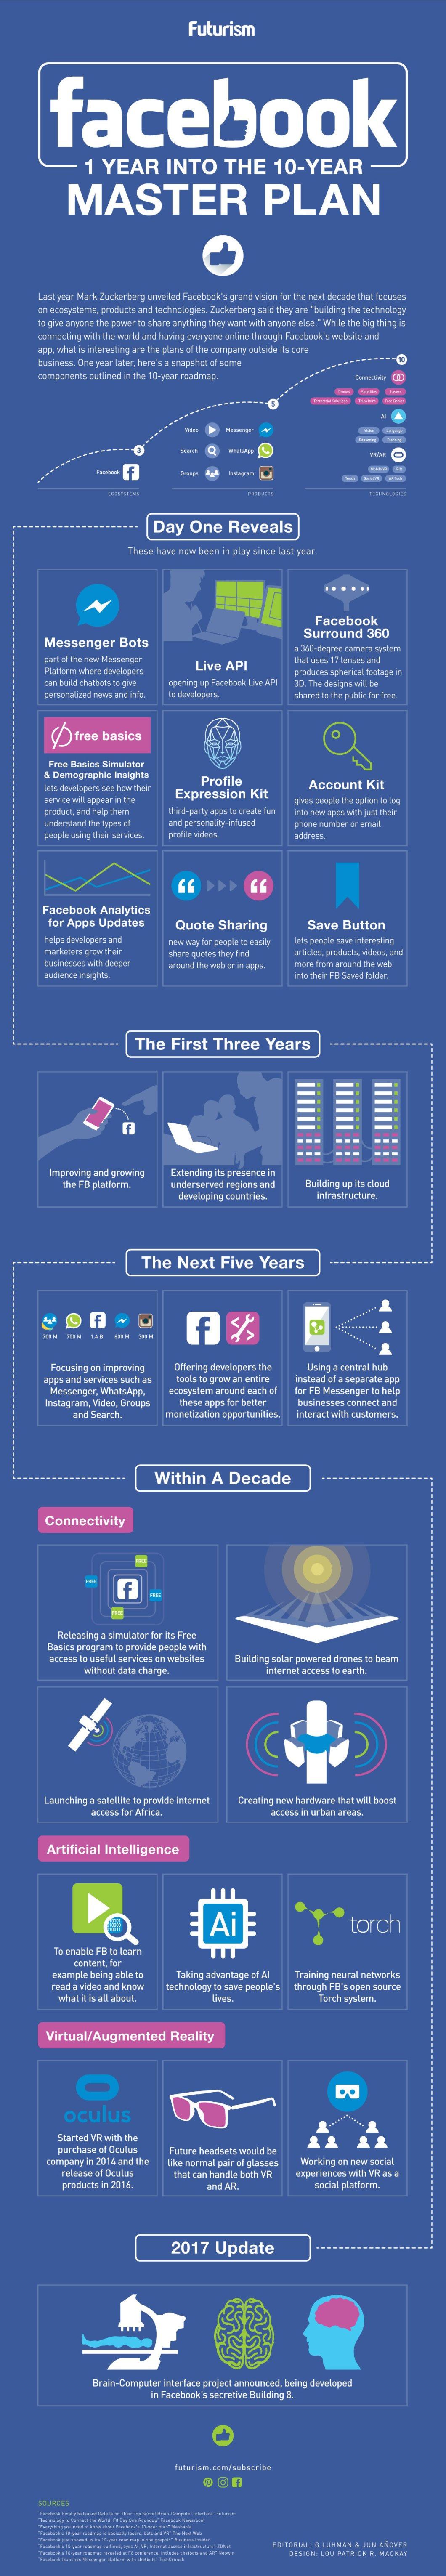 The Ten Year Master Plan For Facebook - Infographic